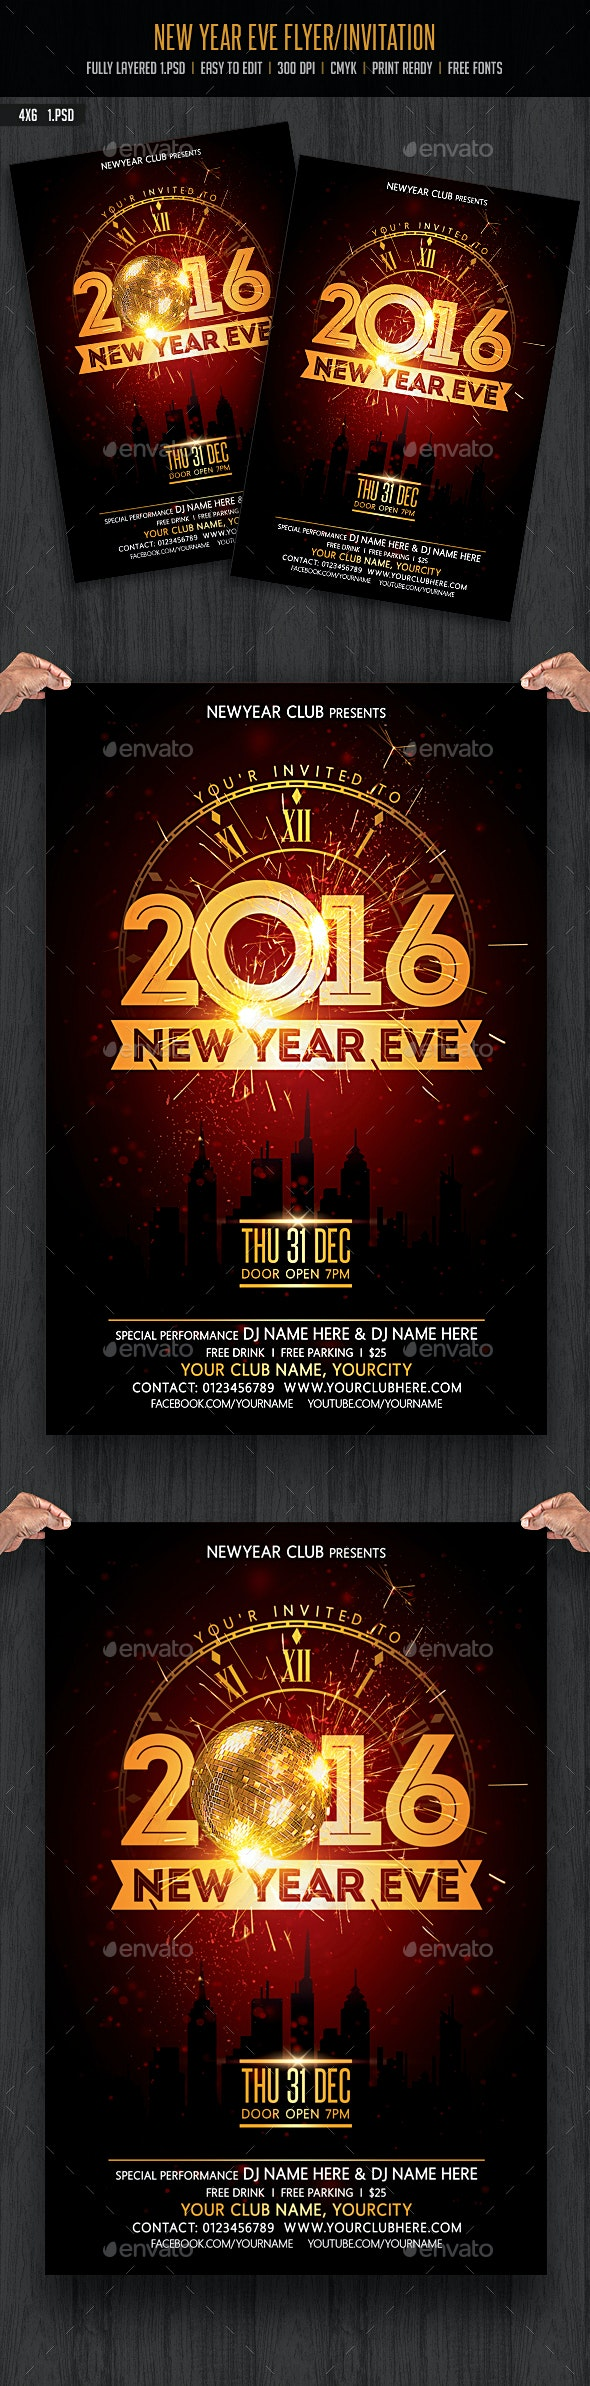 New Year Eve Flyer / Invitation - Clubs & Parties Events